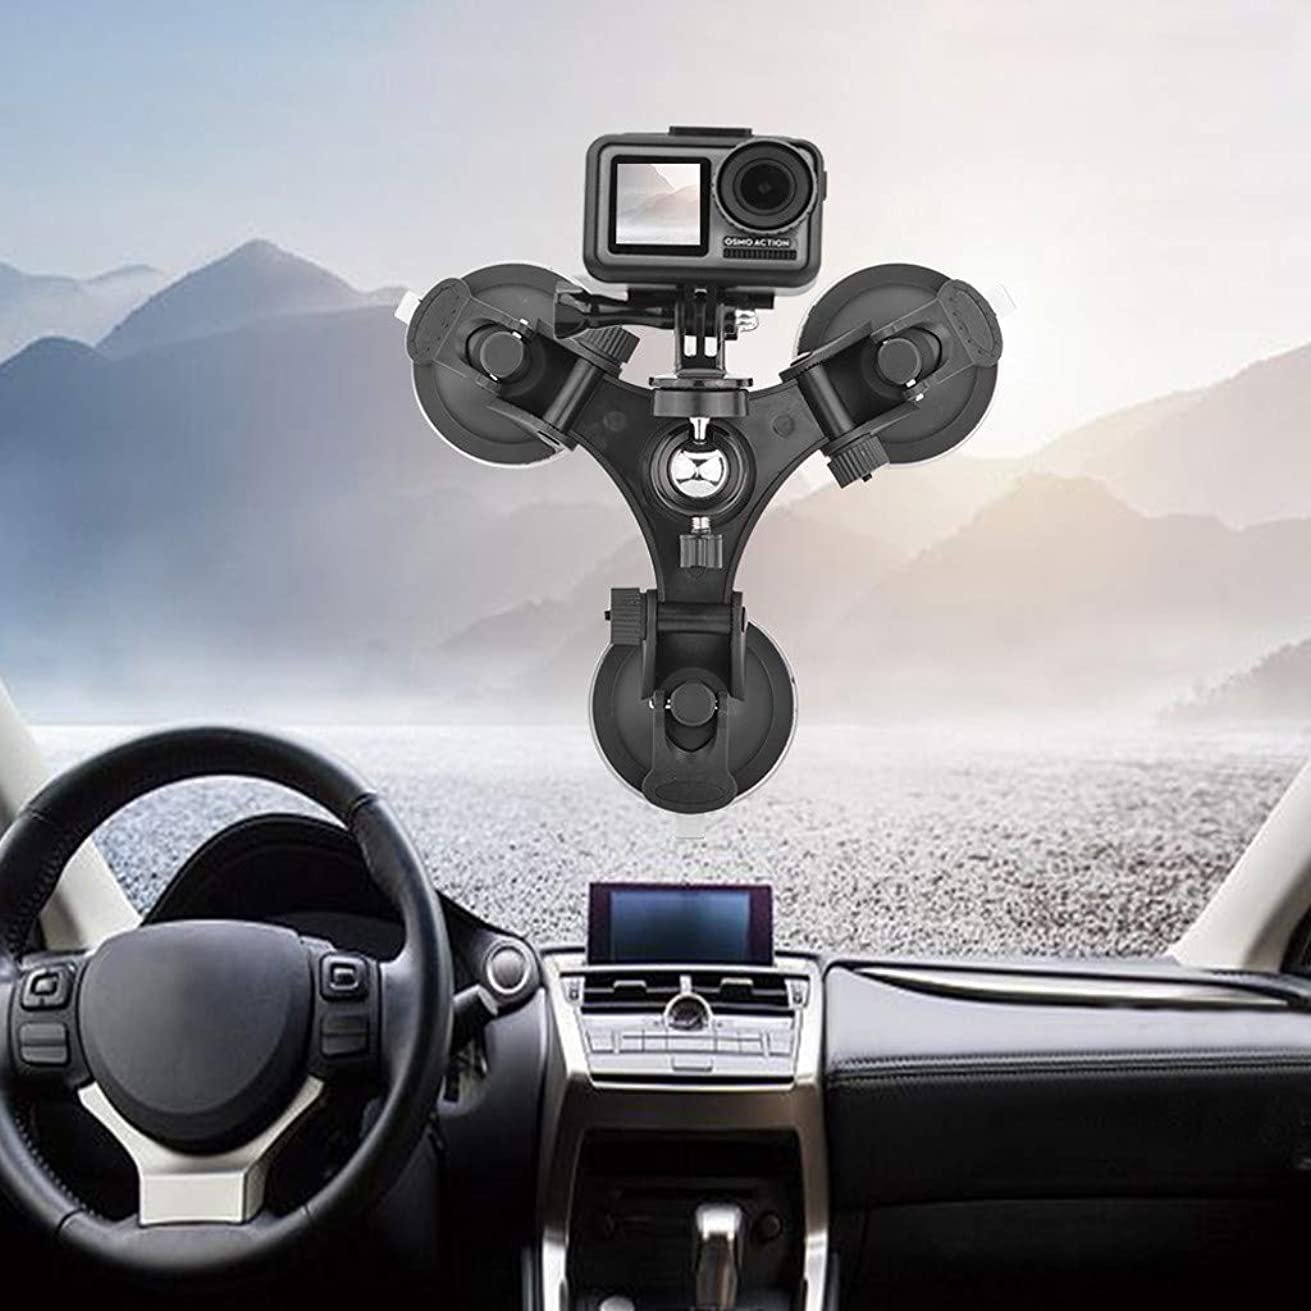 FGDJEE Suction Cup Car Holder Mount for DJI Osmo Pocket Car Glass Sucker Holder Driving Recorder Tripods DJI Osmo Action Accessories